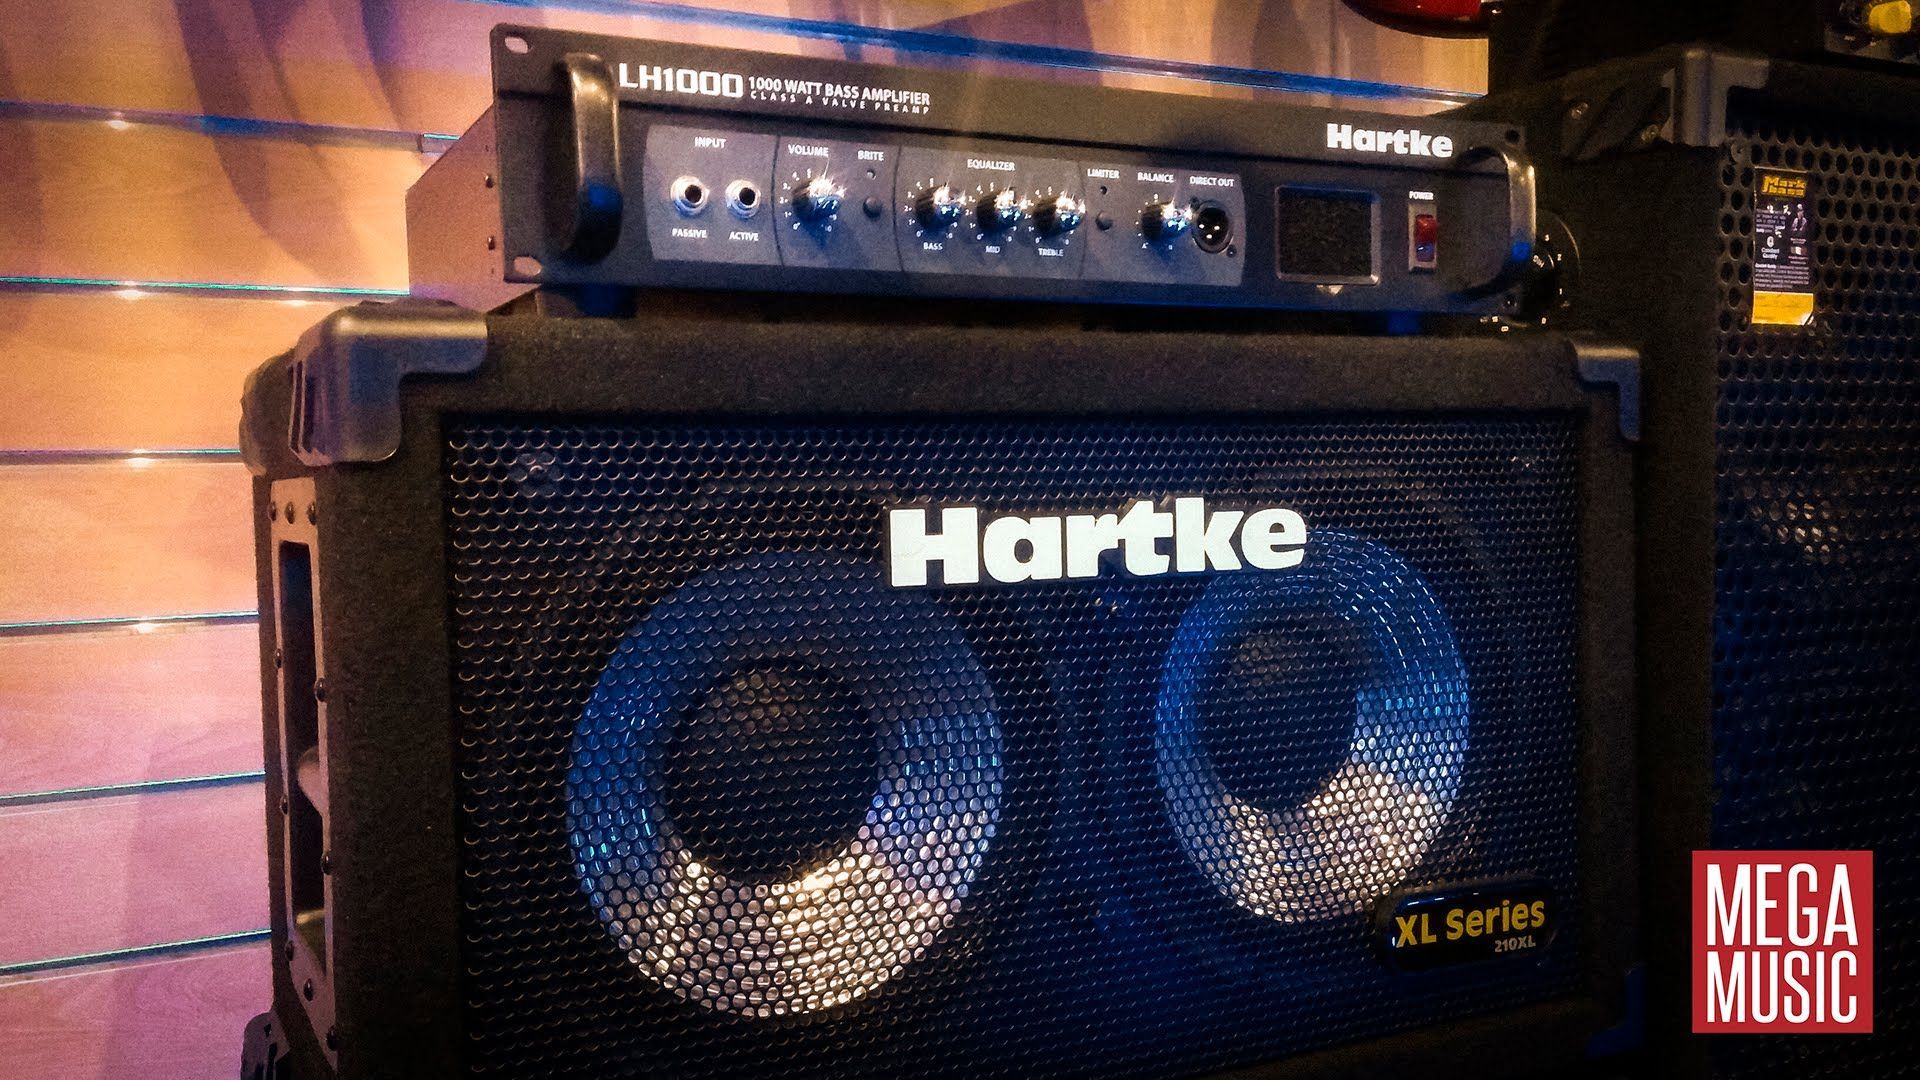 Demo Hartke Lh1000 Bass Head 210xl Speaker Cabinet Hartke Hartkebasscab Bassamp Bassamplifier Amplifier Megamusic Megamusicmya Bass Head Speaker Bass